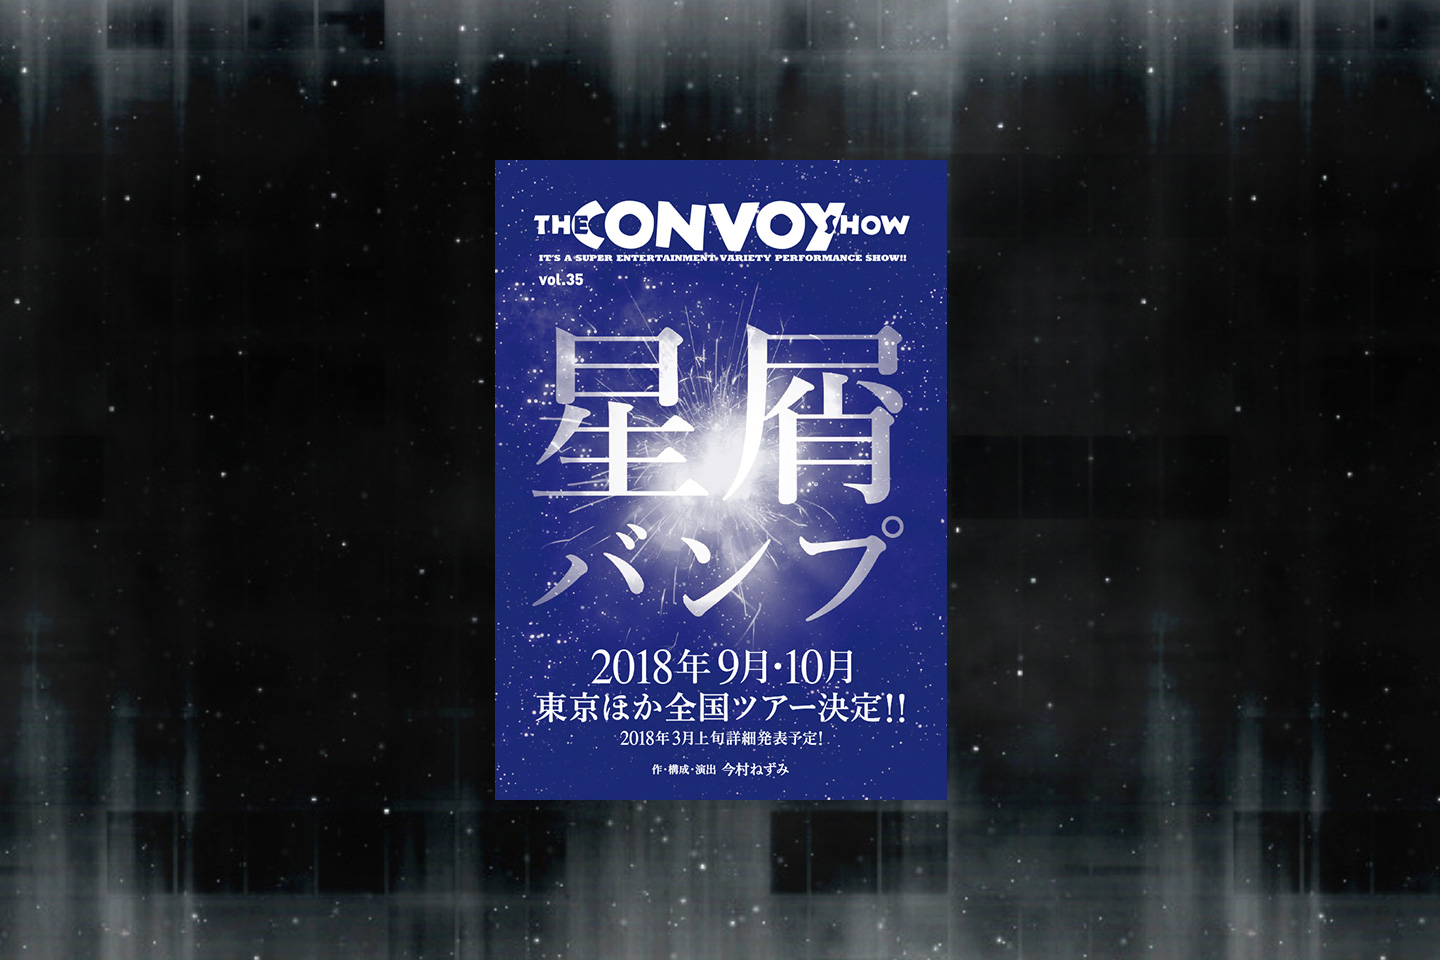 THE CONVOY SHOW vol.35『星屑バンプ』